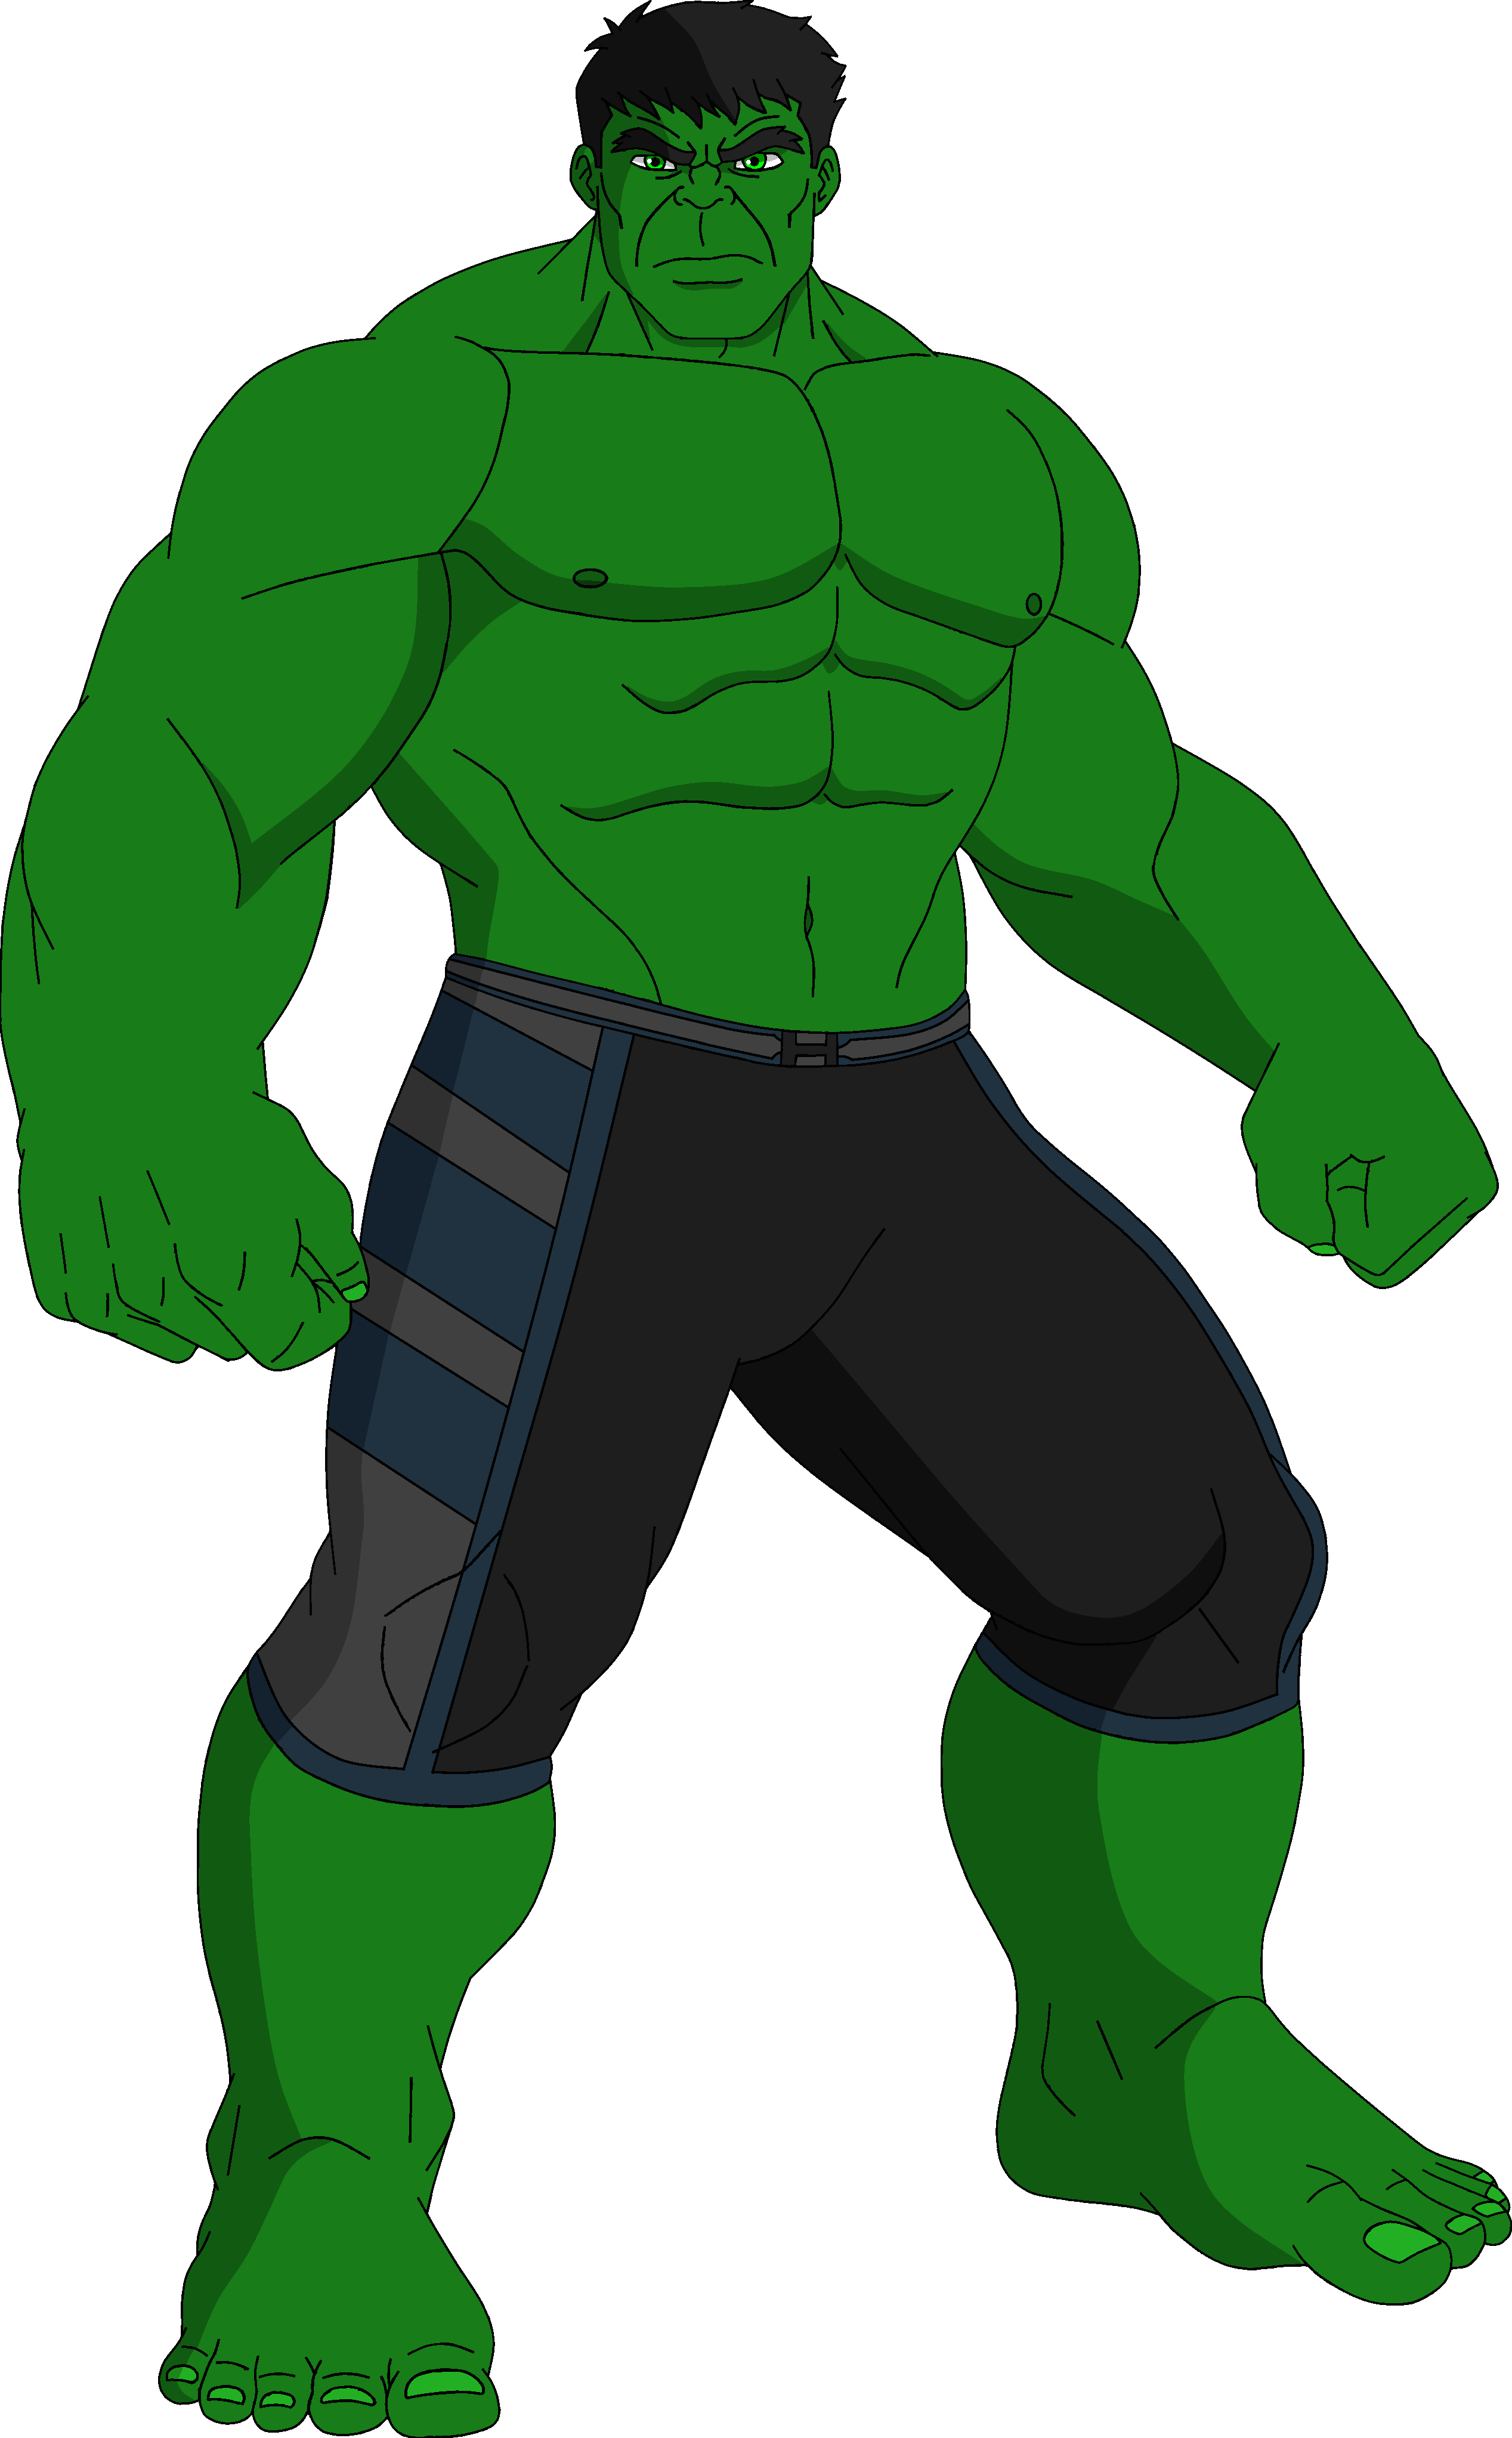 L'incredible HULK by steeven7620 on DeviantArt